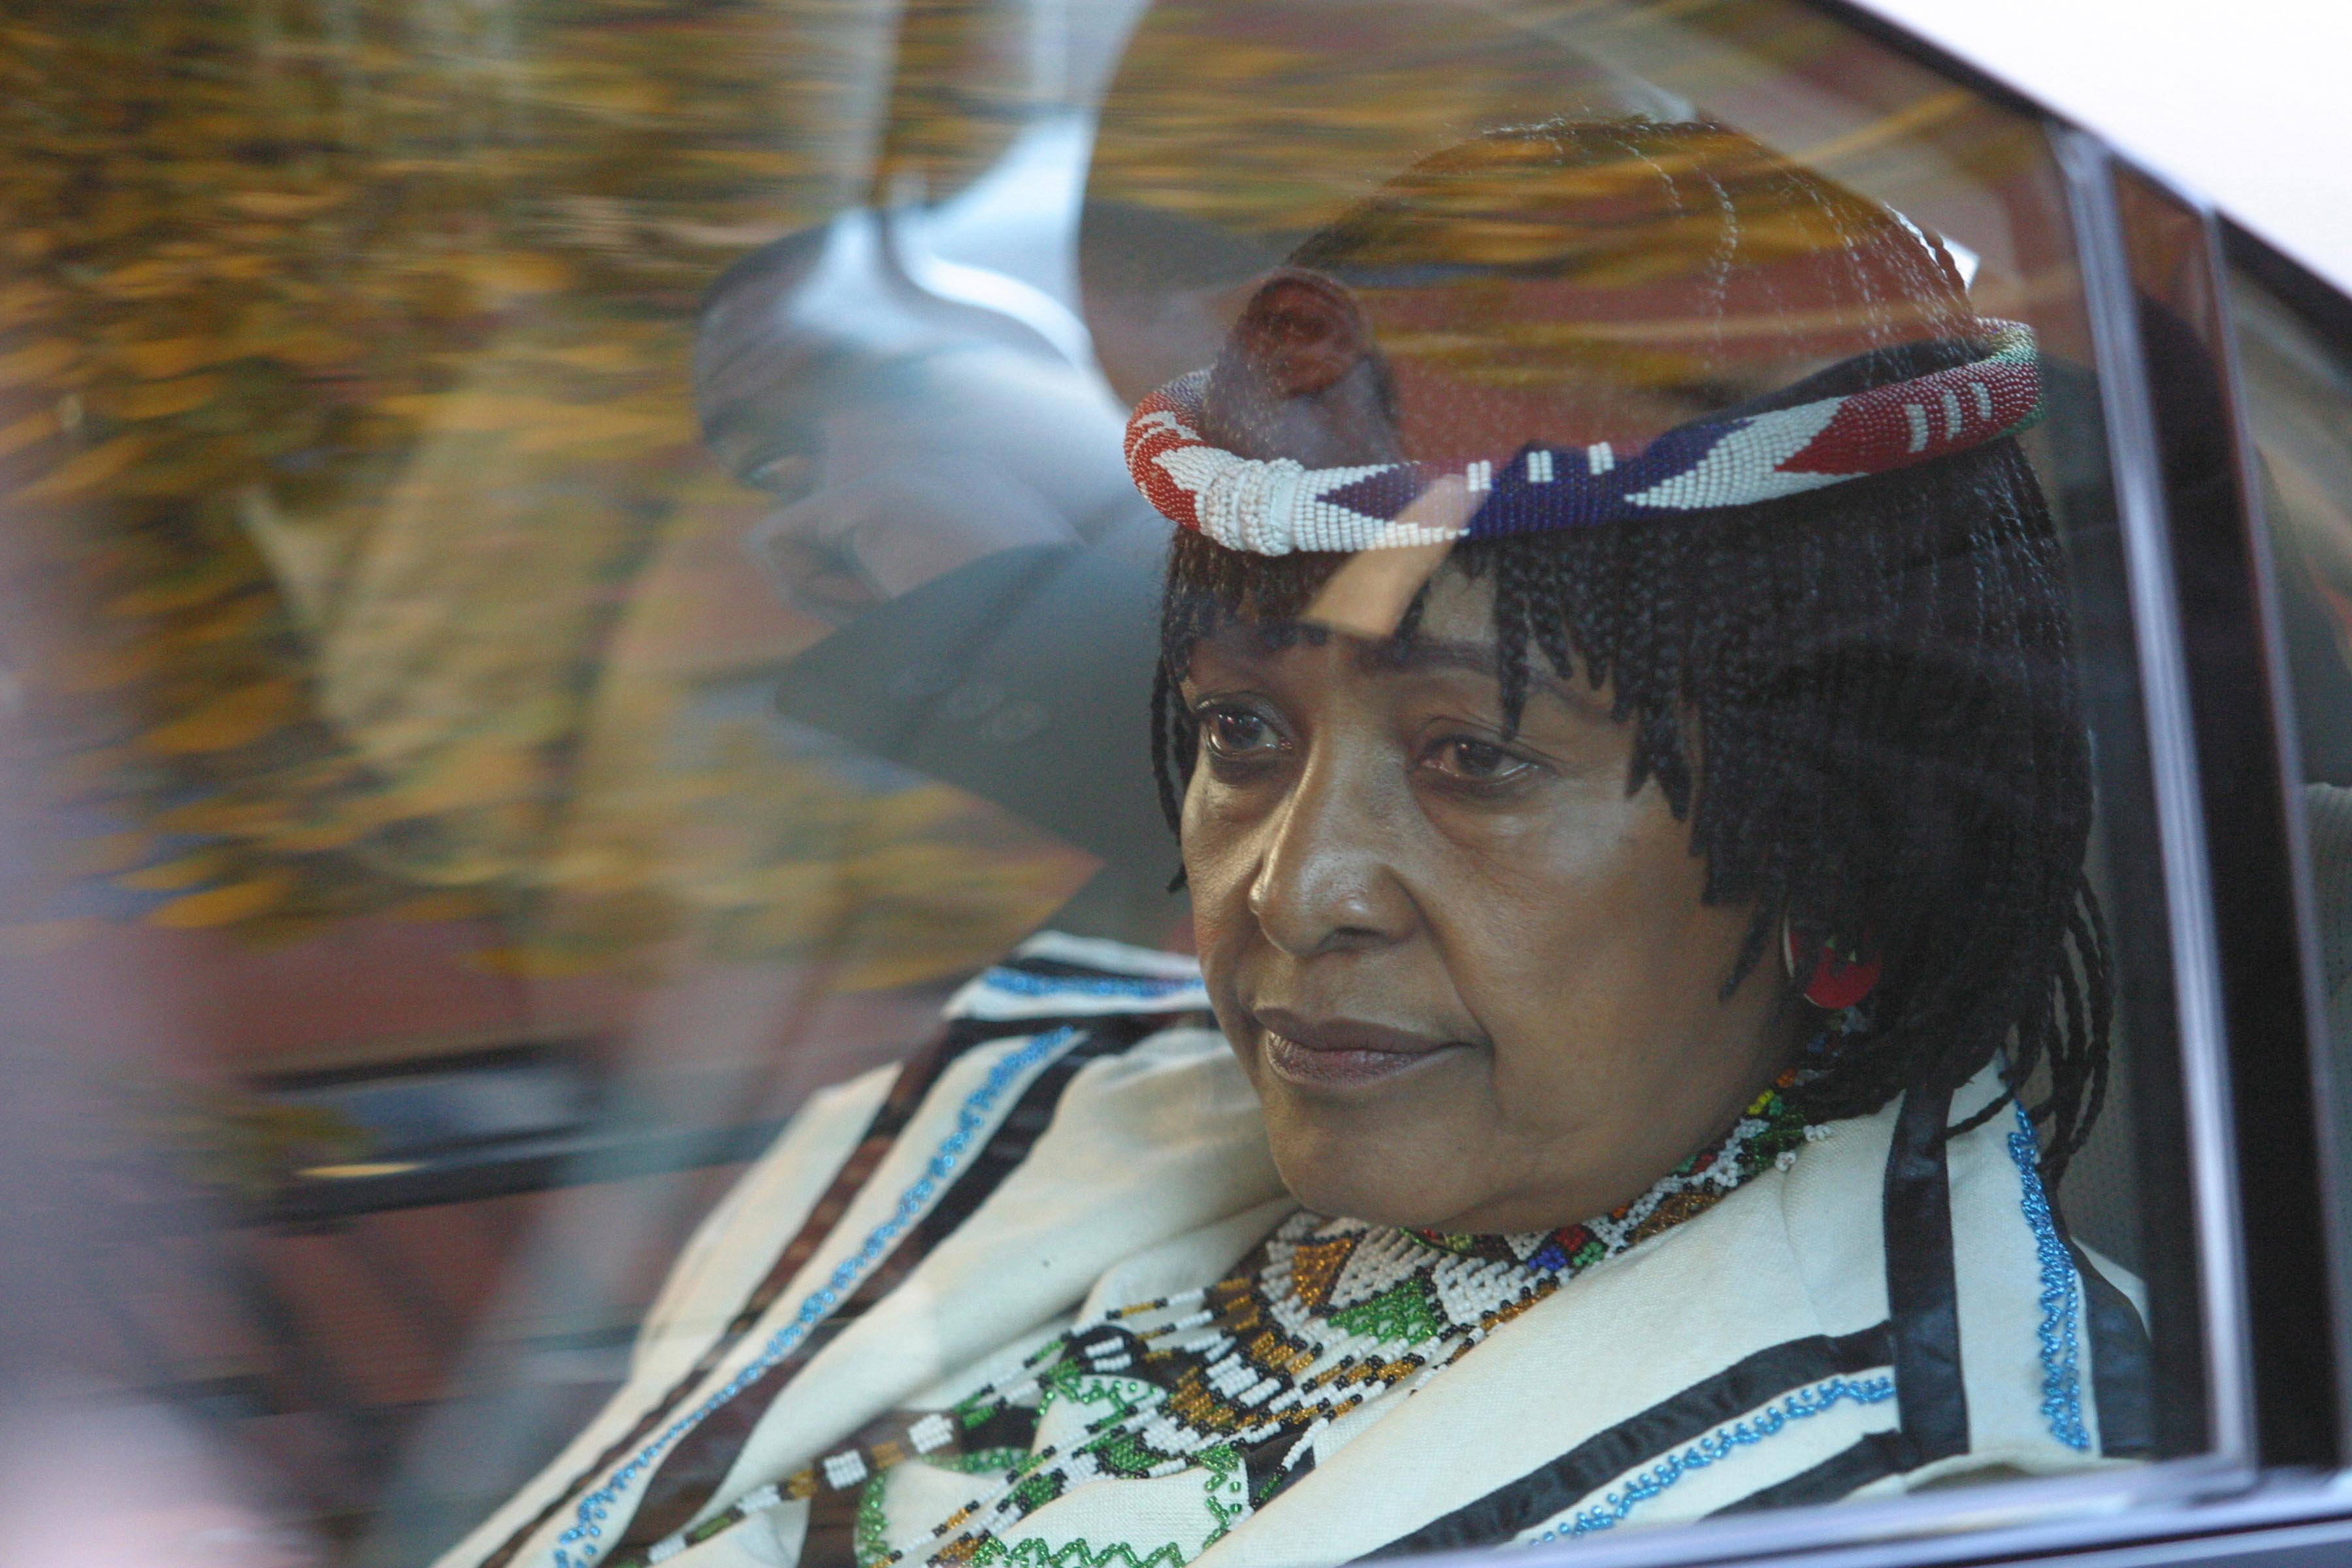 24 May 2004: Winnie Madikizela-Mandela leaving the high court in Tshwane where she appealed the five-year jail sentence imposed on her in connection with bank loans she obtained from her employees. She was acquitted of all fraud charges.(Photograph by Oryx Media Archive/Gallo Images/Getty Images)